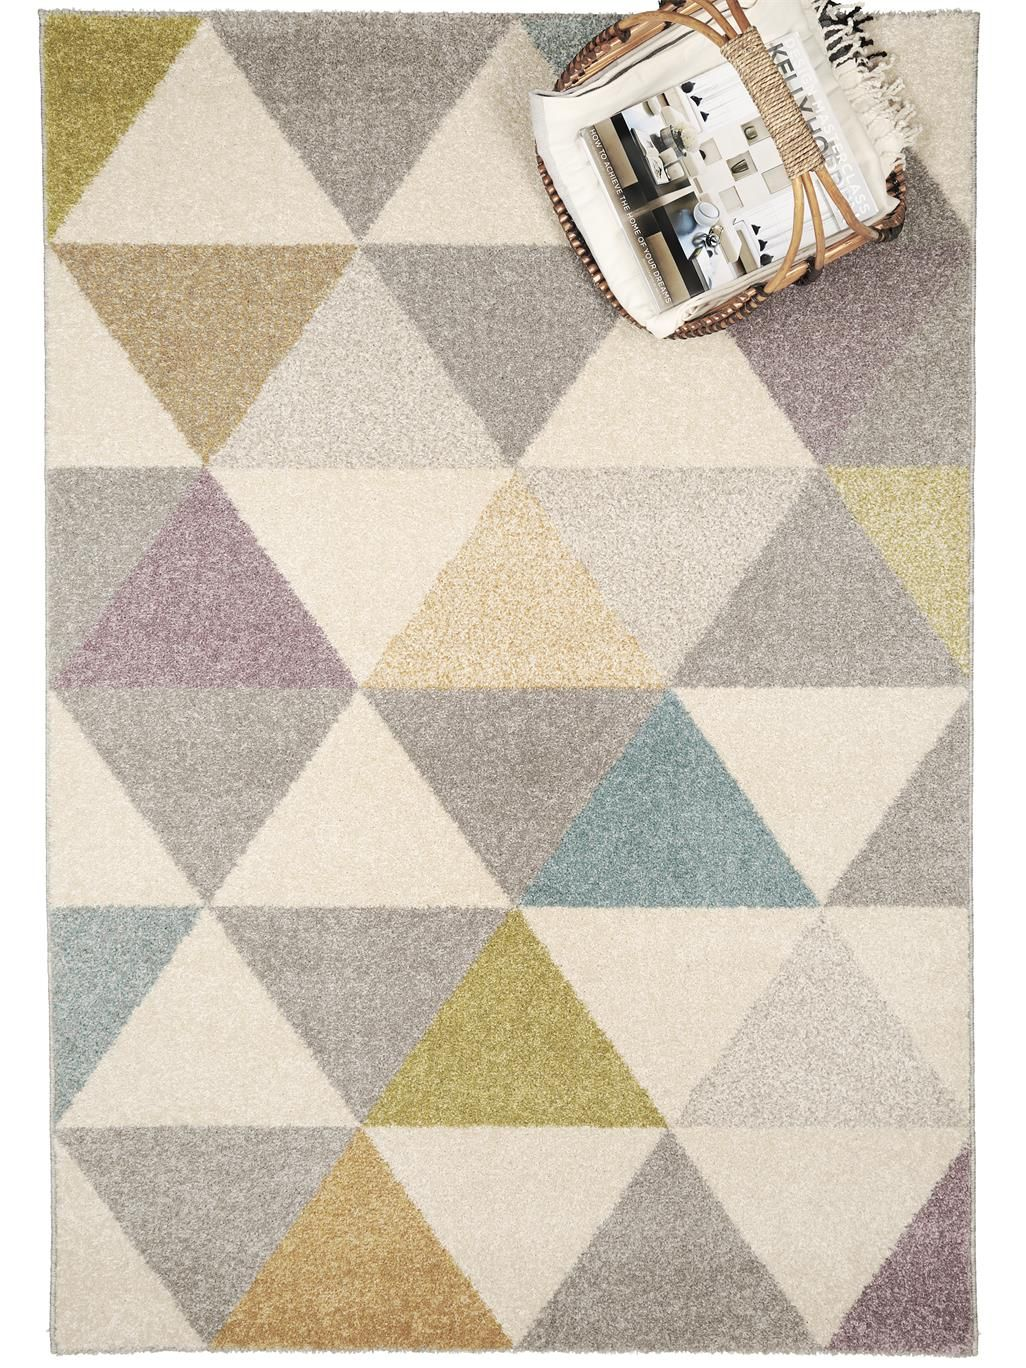 Benuta Baby Teppich Pin By Niki On Decor Ideas Pinterest Rugs Pastel And